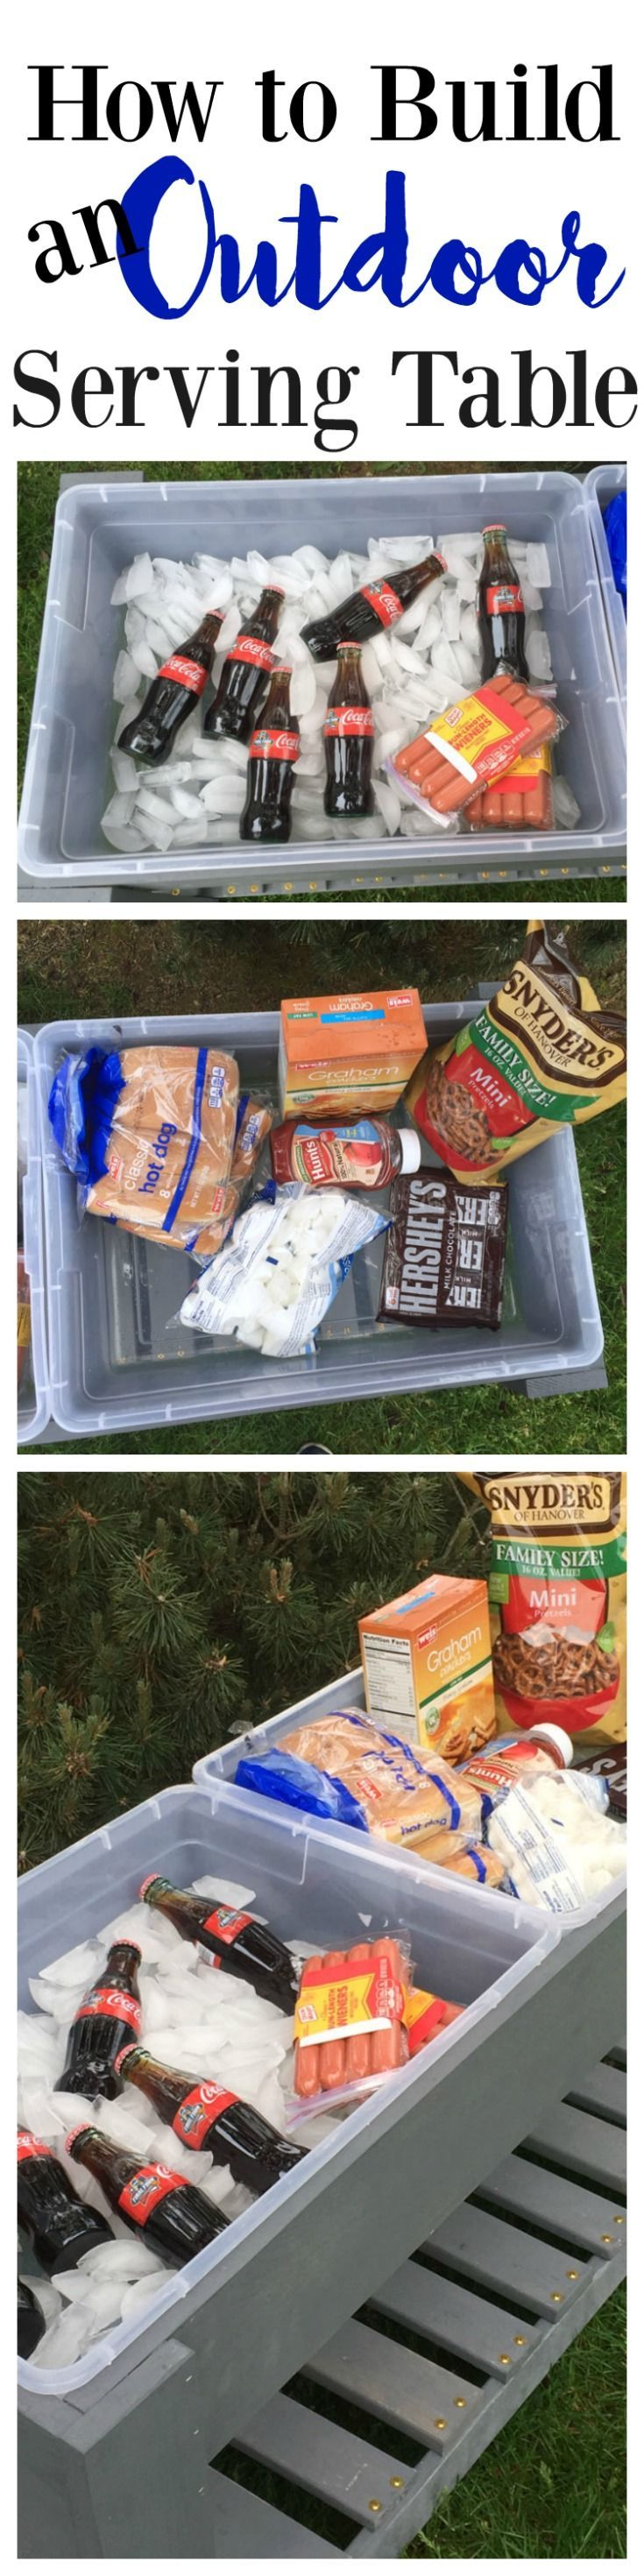 How to Build an Outdoor Serving Table